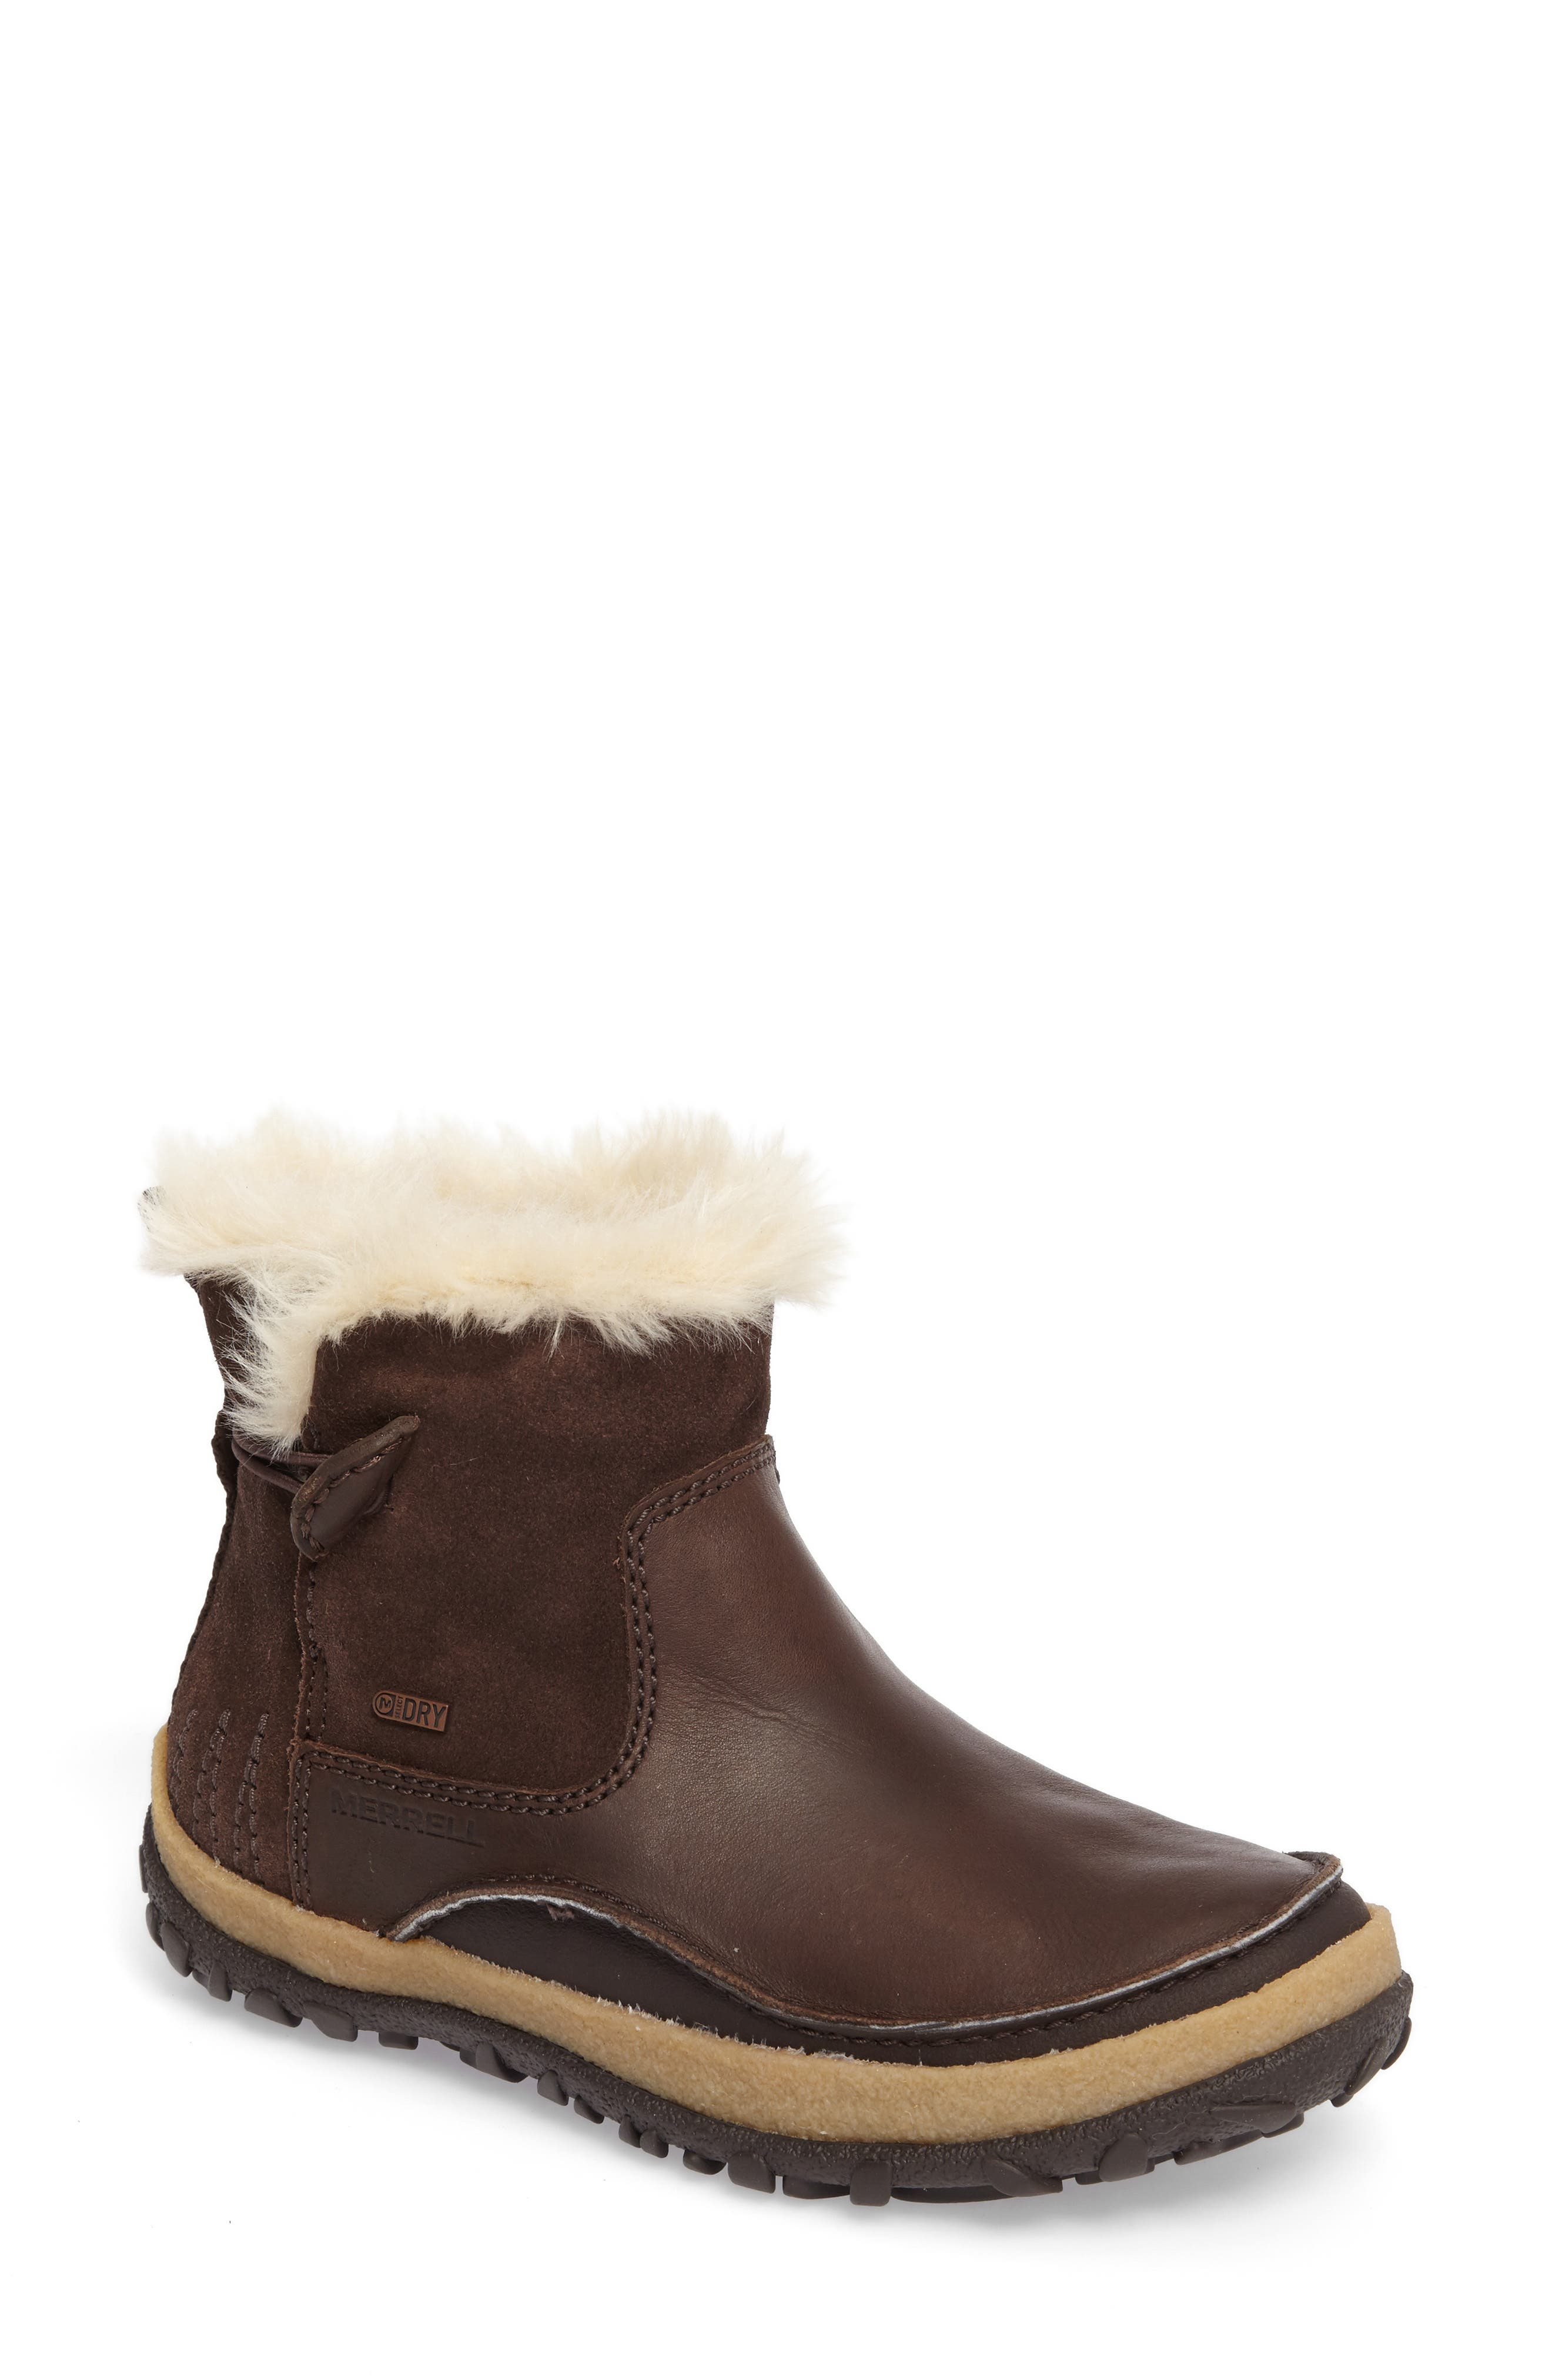 Tremblant Pull-On Polar Waterproof Bootie,                         Main,                         color, Espresso Leather